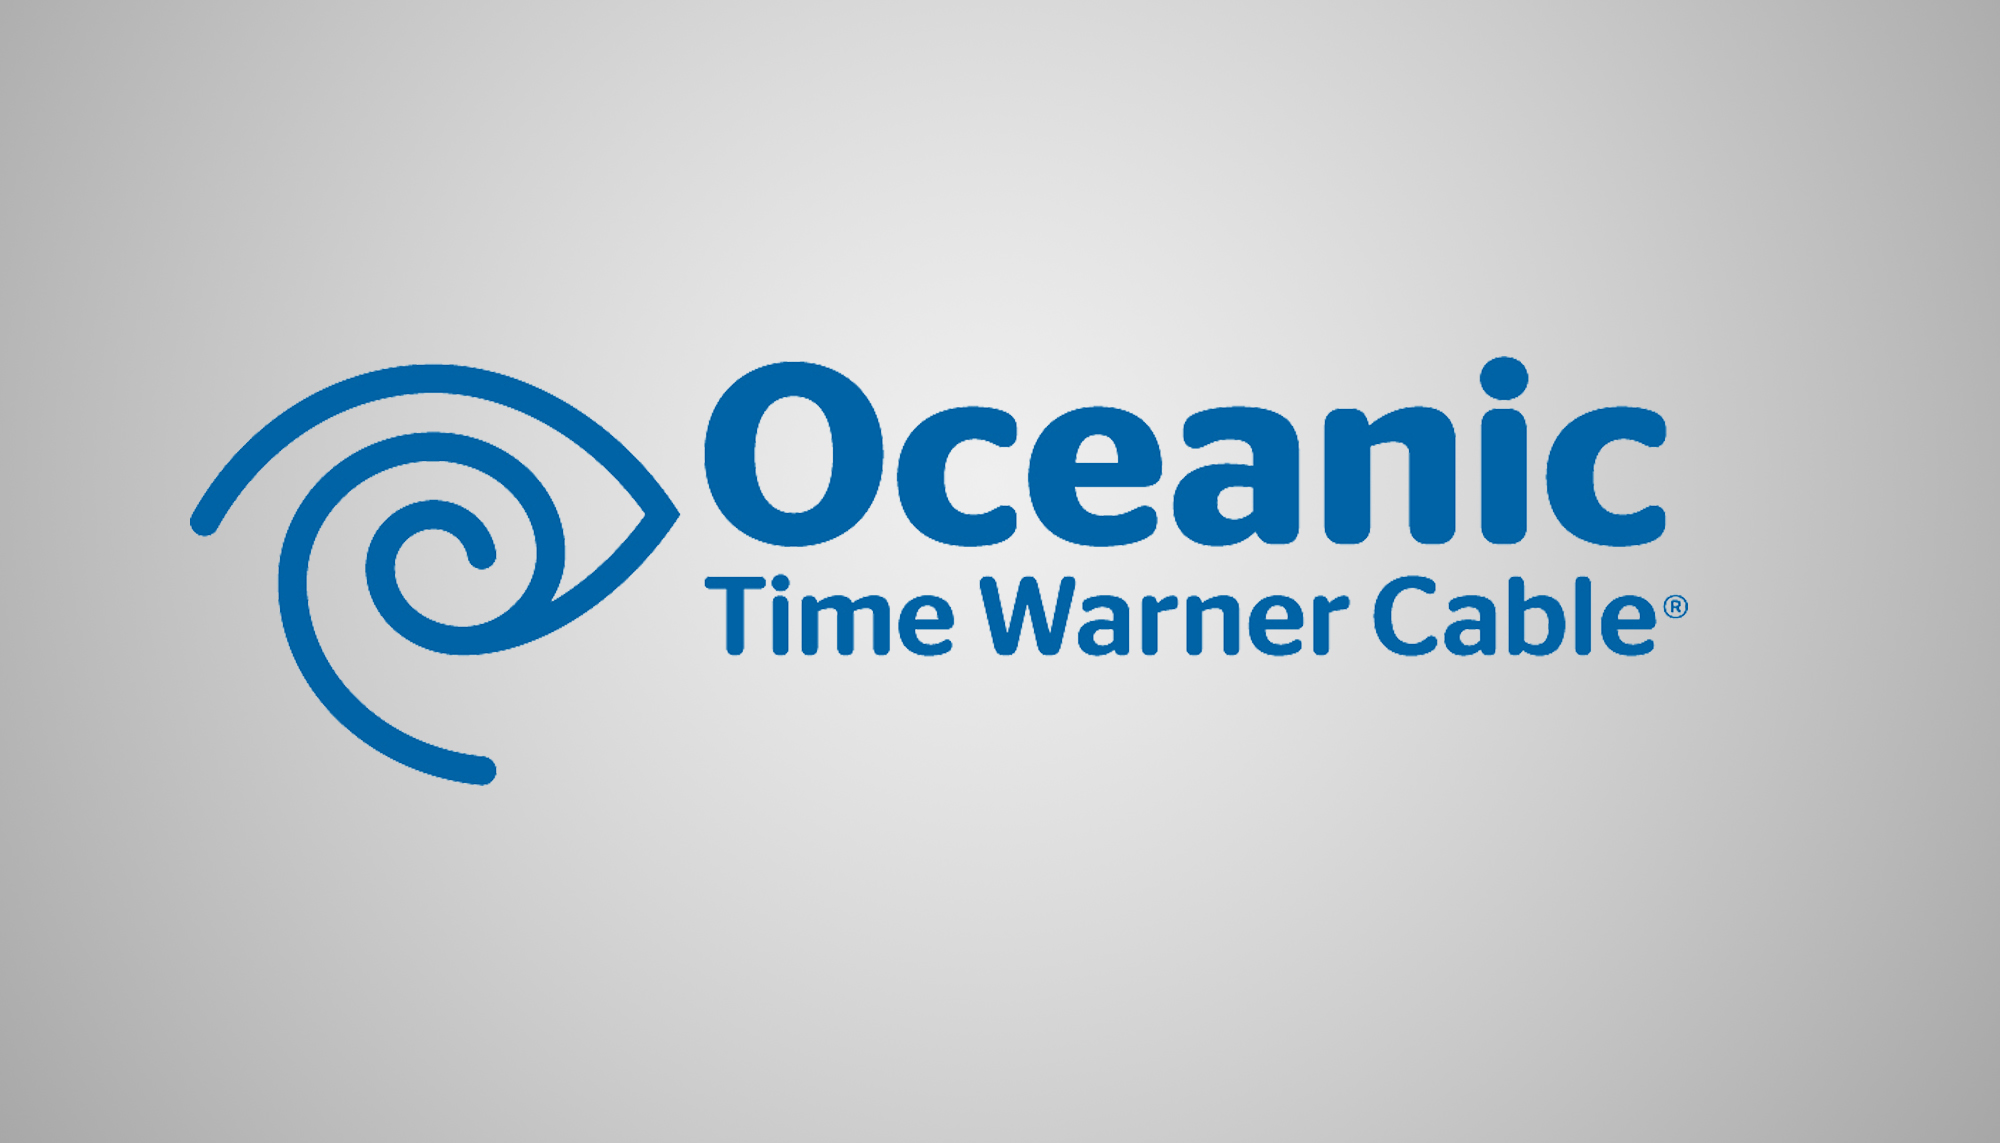 Oceanic Time Warner Cable Hawaii Customer Service - Somurich com